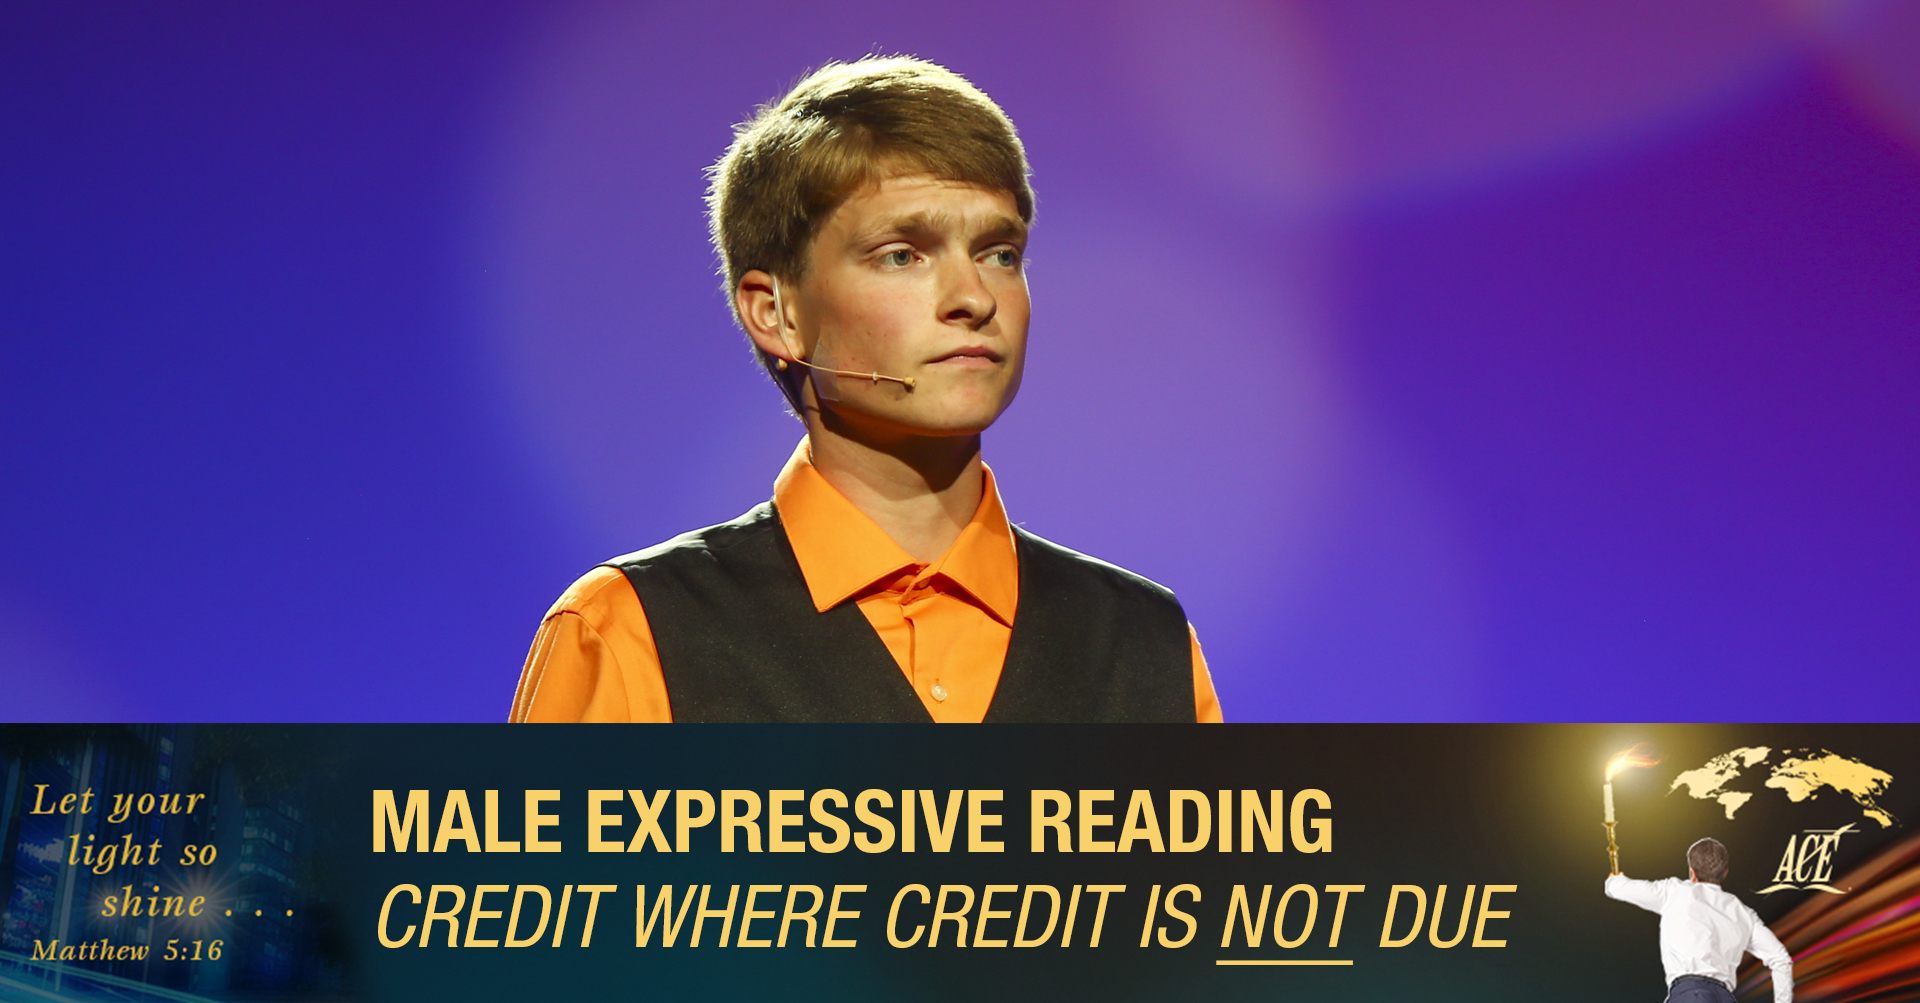 """Male Expressive Reading, """"Credit Where Credit Is NOT Due"""" - ISC 2019"""